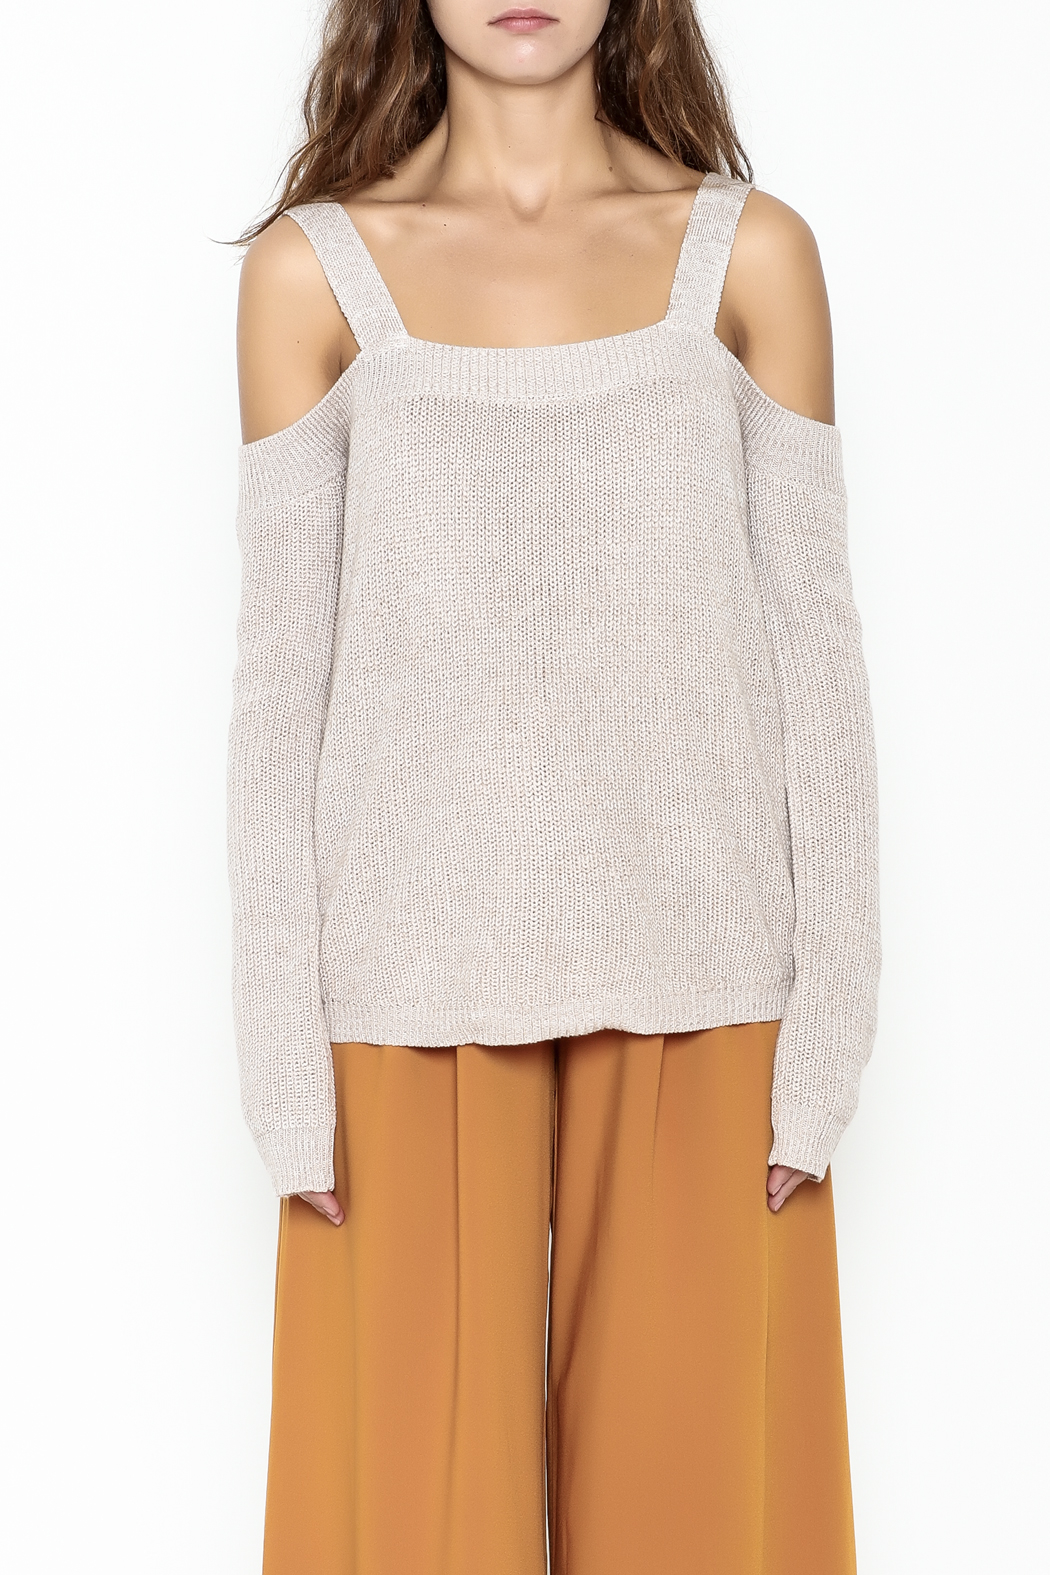 Fate Cold Shoulder Sweater - Front Full Image